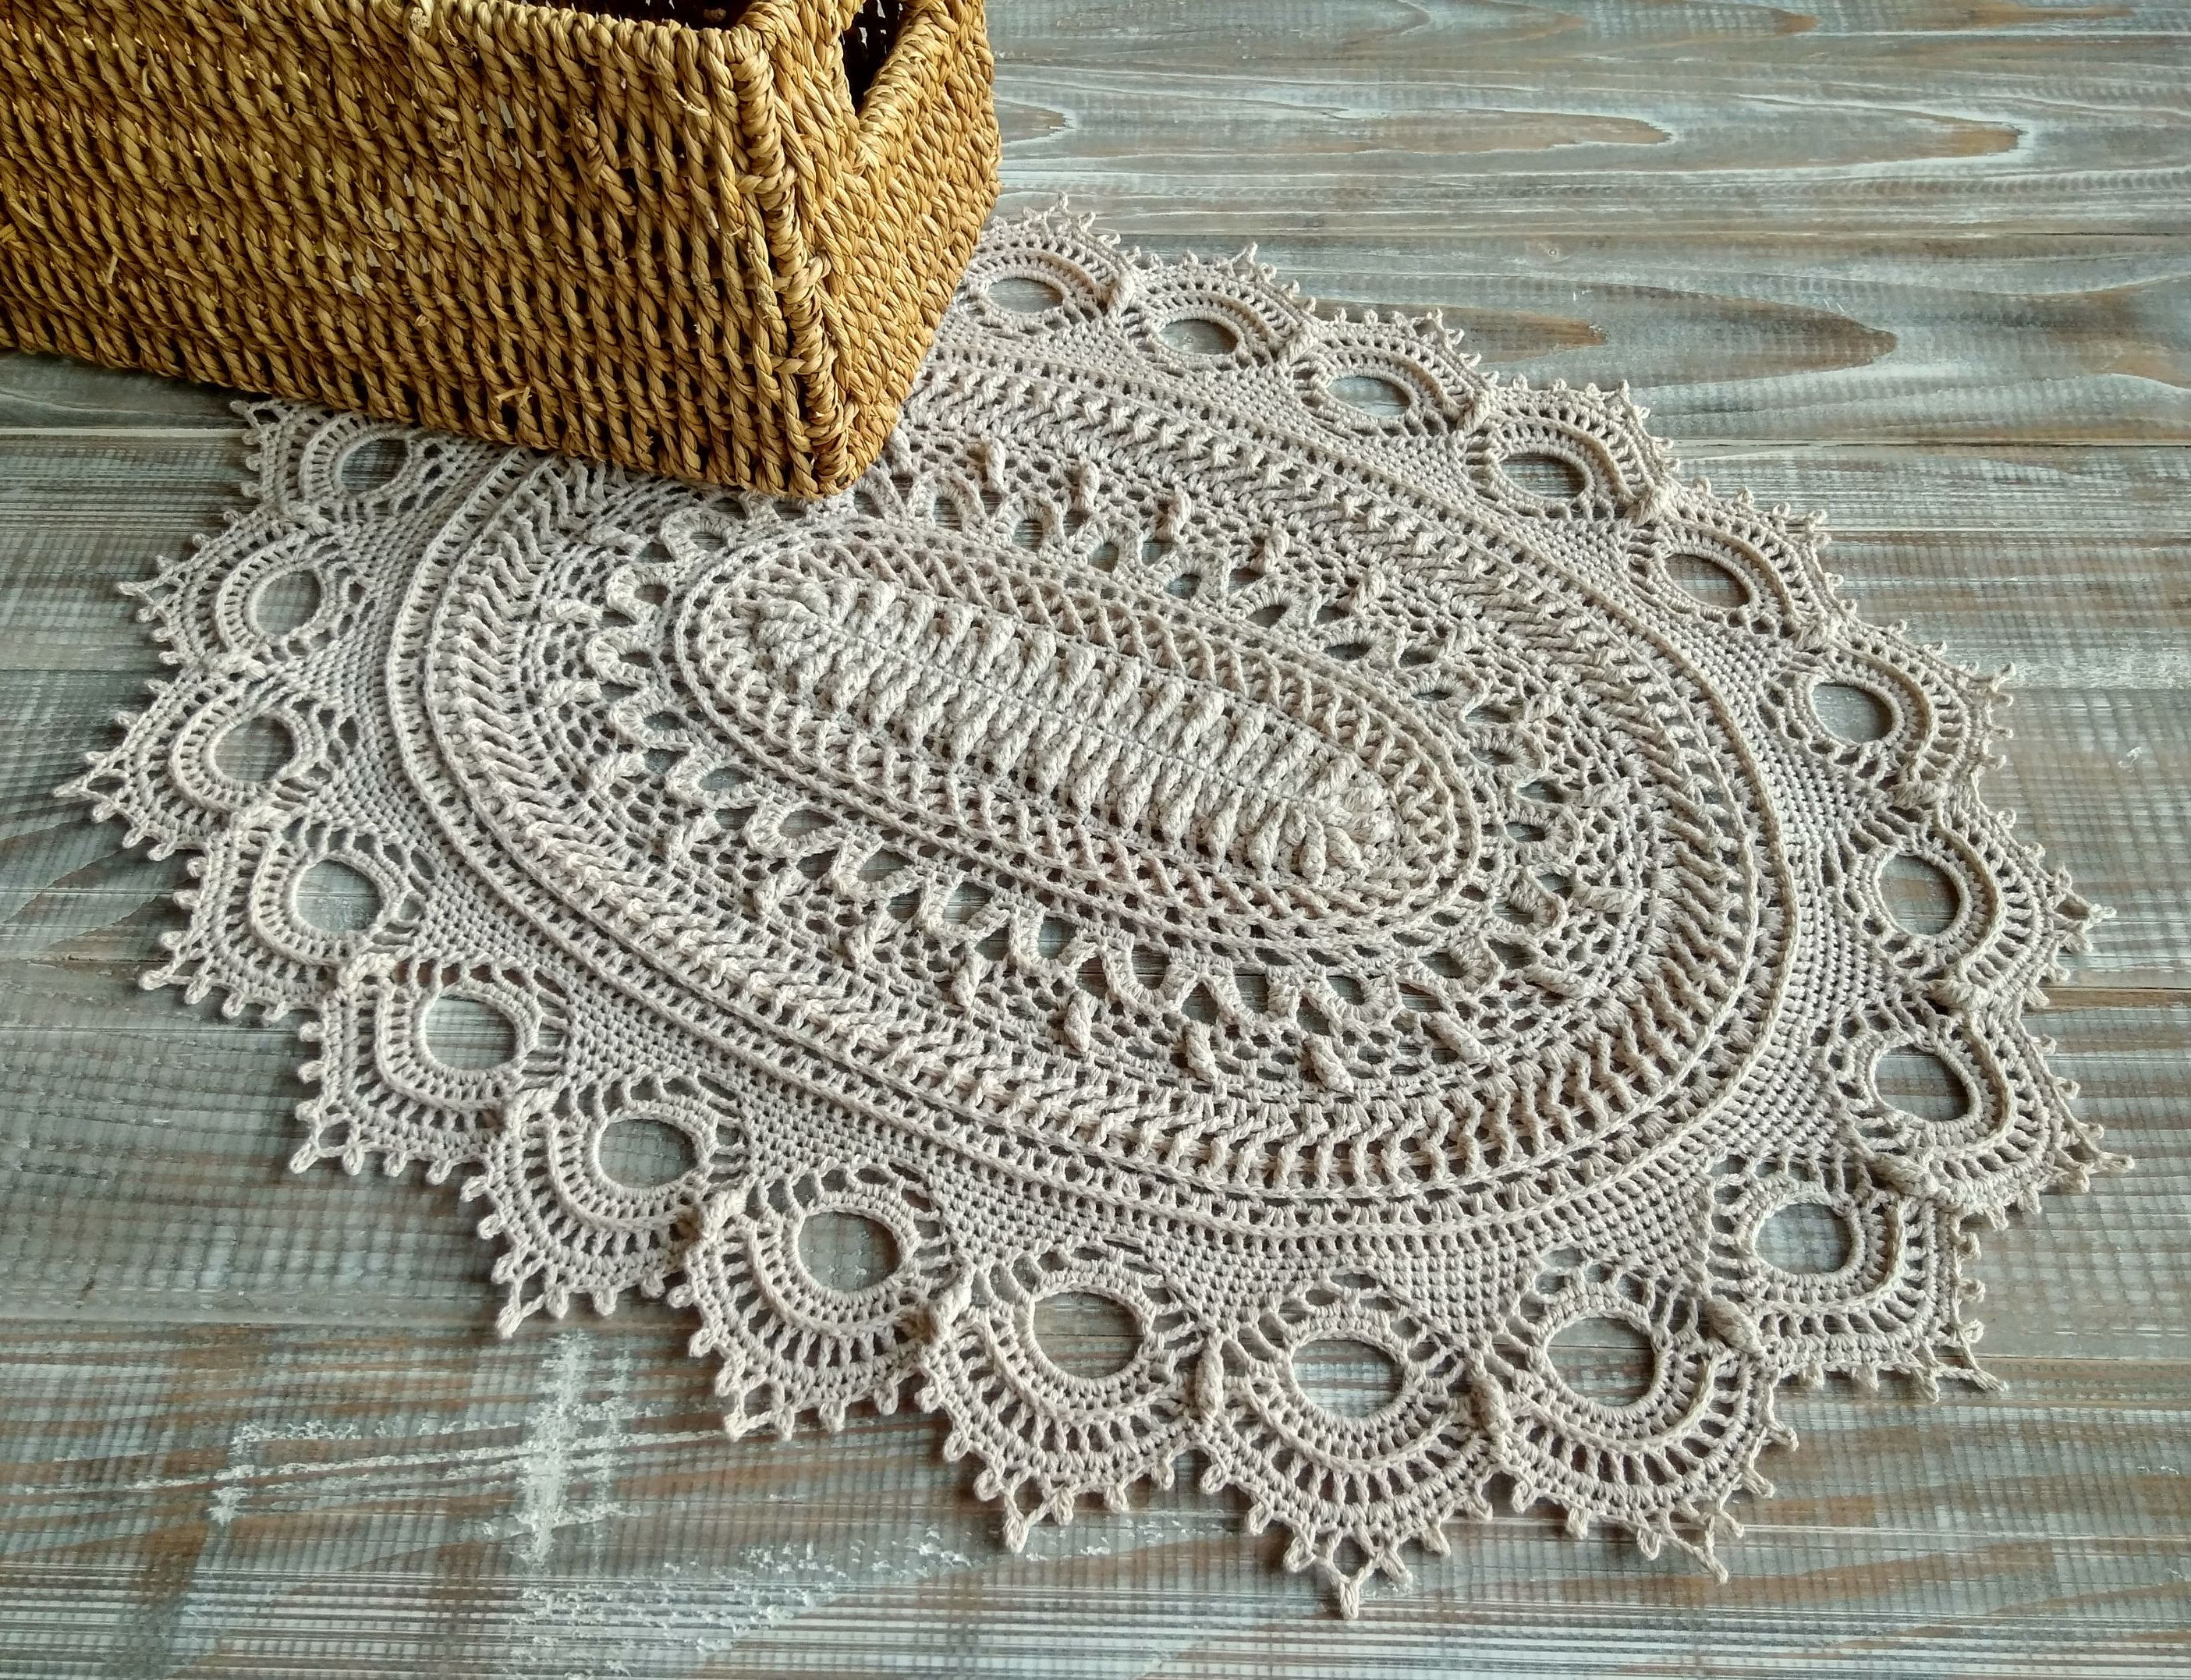 Wabi Sabi Decor Crochet Doily Wedding Decor Doily Oval Doily Lace